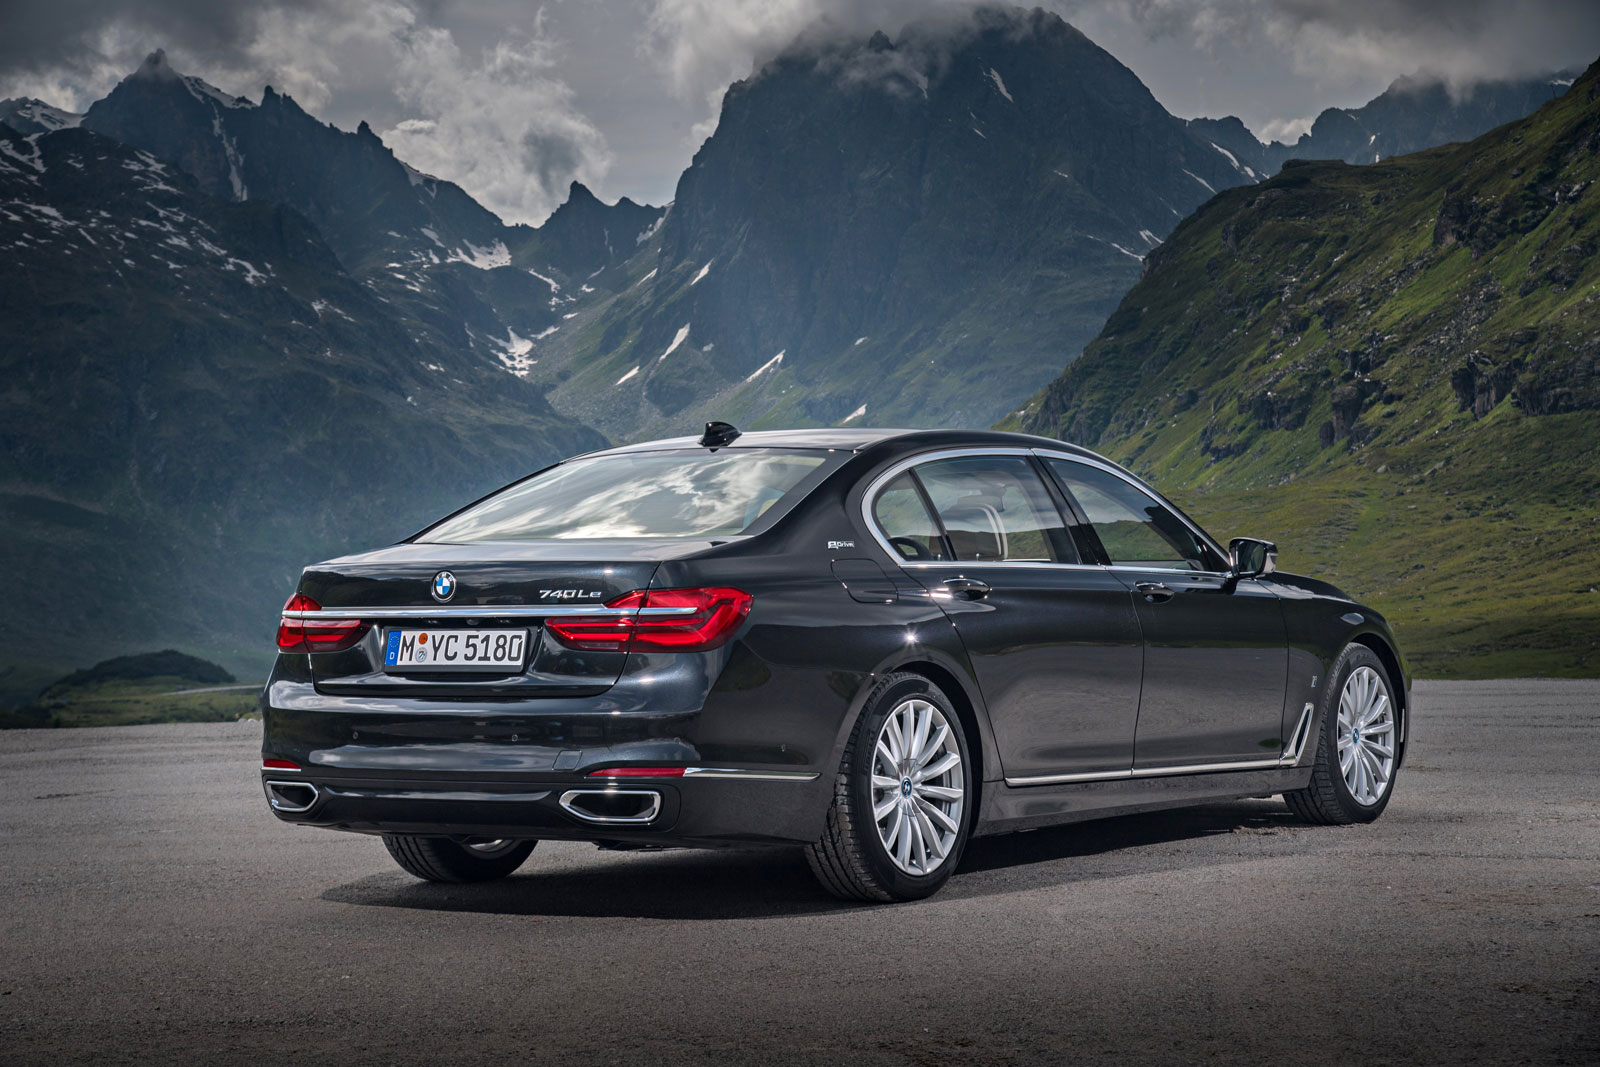 BMW i Technology Makes Debut On The New BMW 740e And 740Le xDRIVE 6